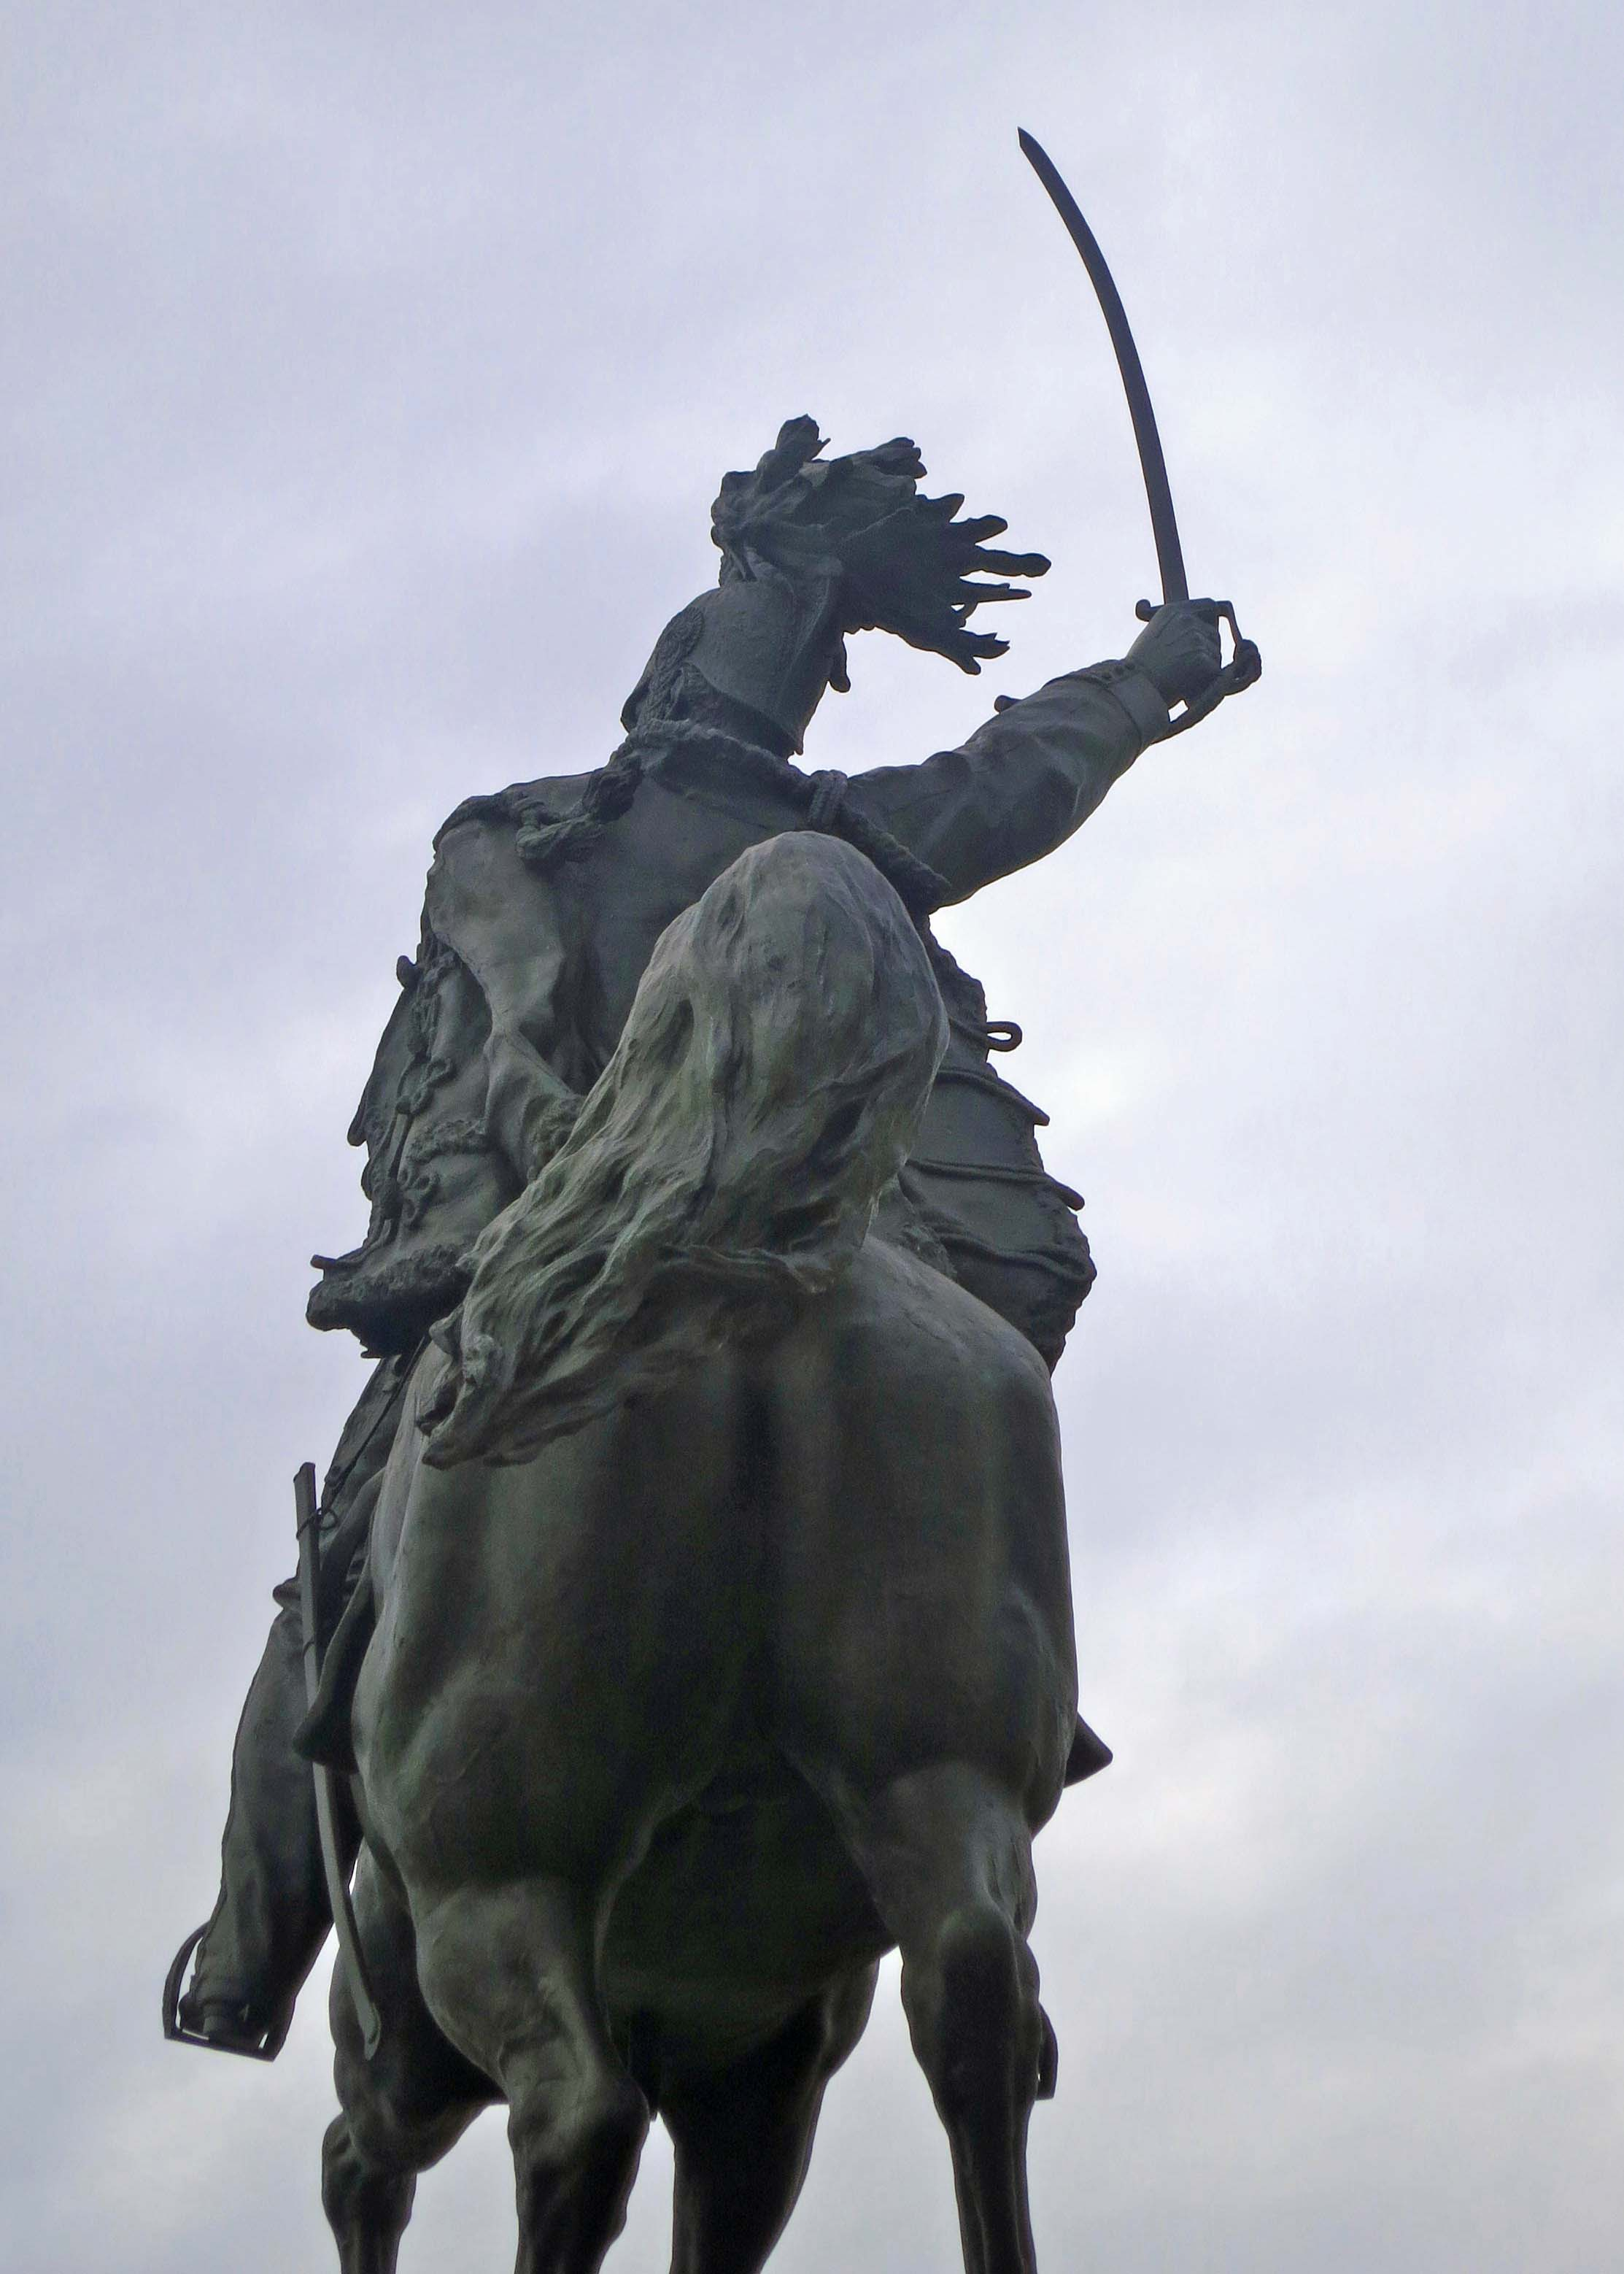 I took this photo of King Emmanuel charging into battle with his sword raised and horse's tail flying.